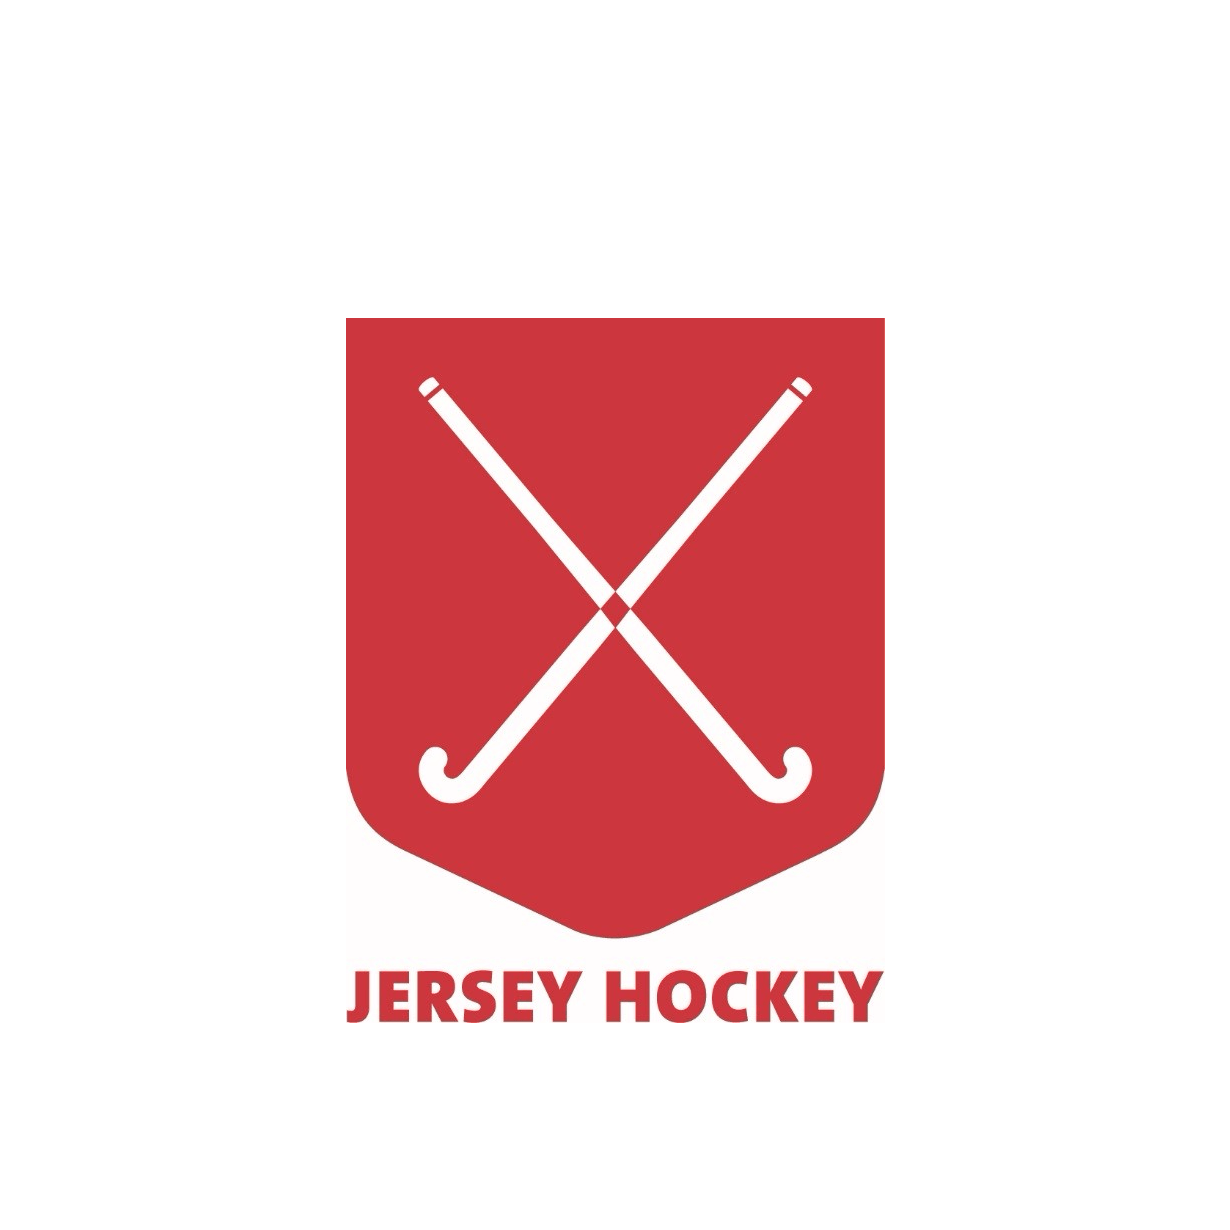 Jersey Hockey Clubhouse